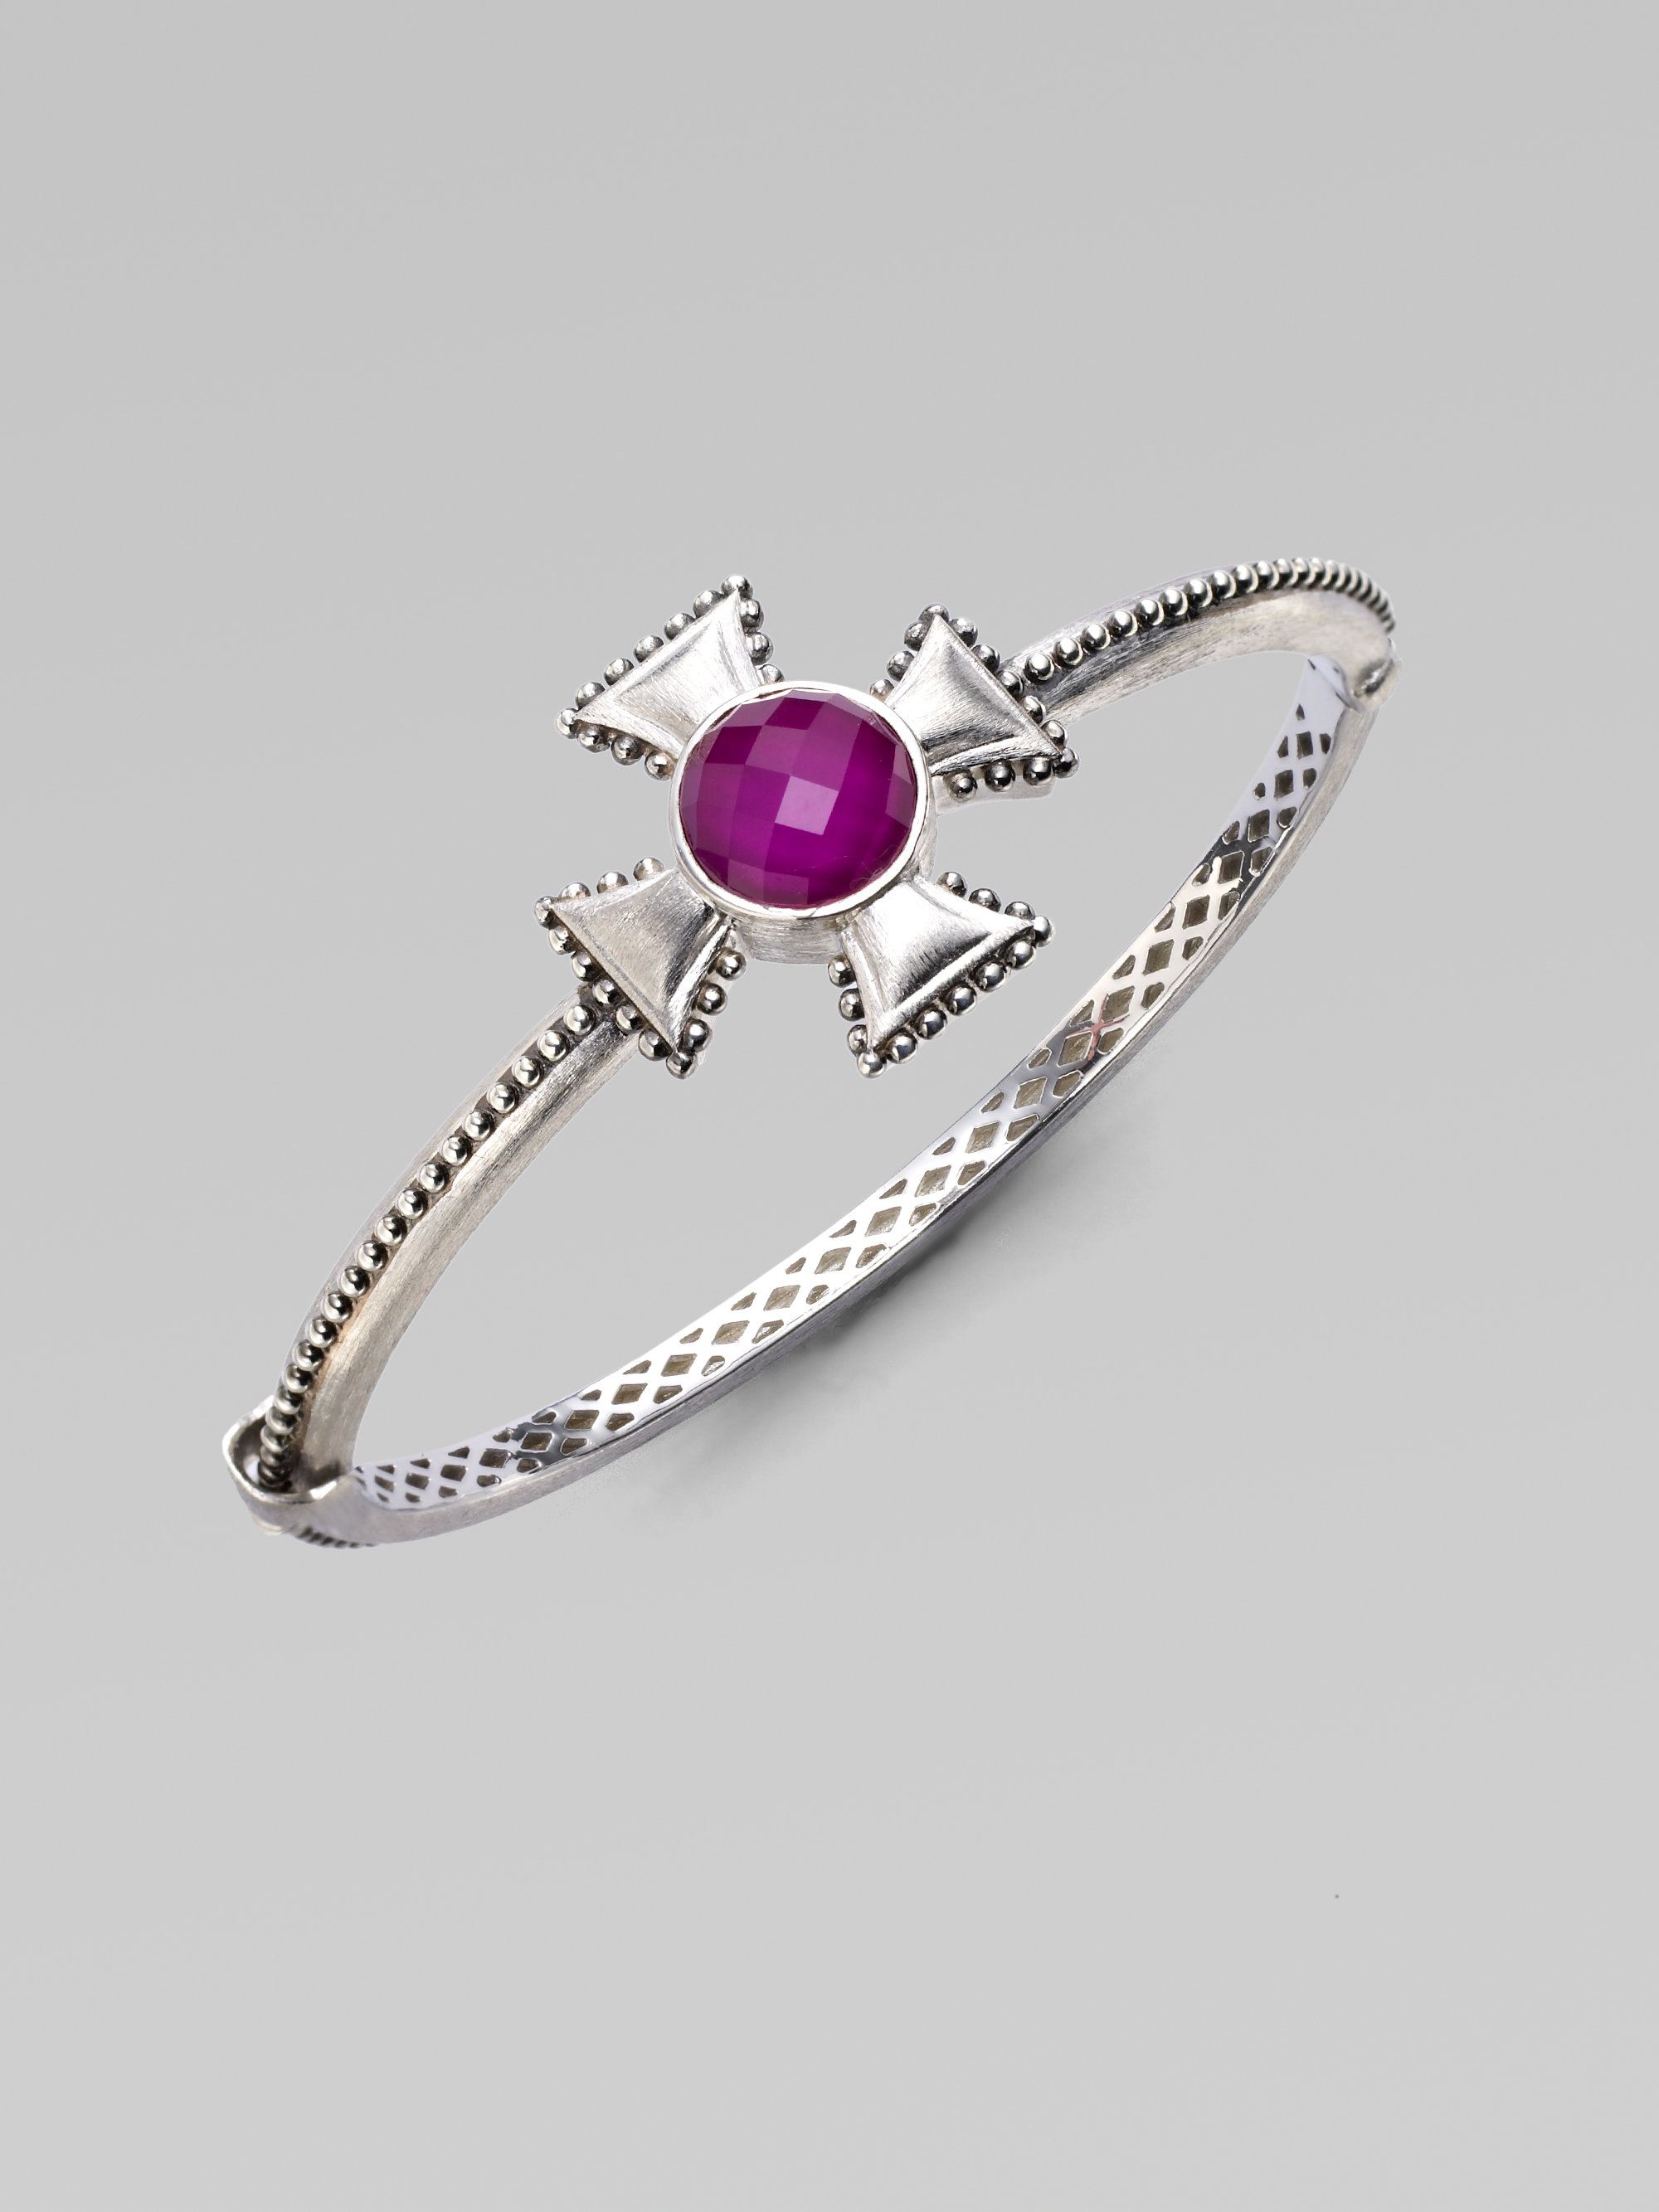 bangles gallery set sterling silver in color jewelry bracelet amethyst classics with metallic bangle david lyst yurman product